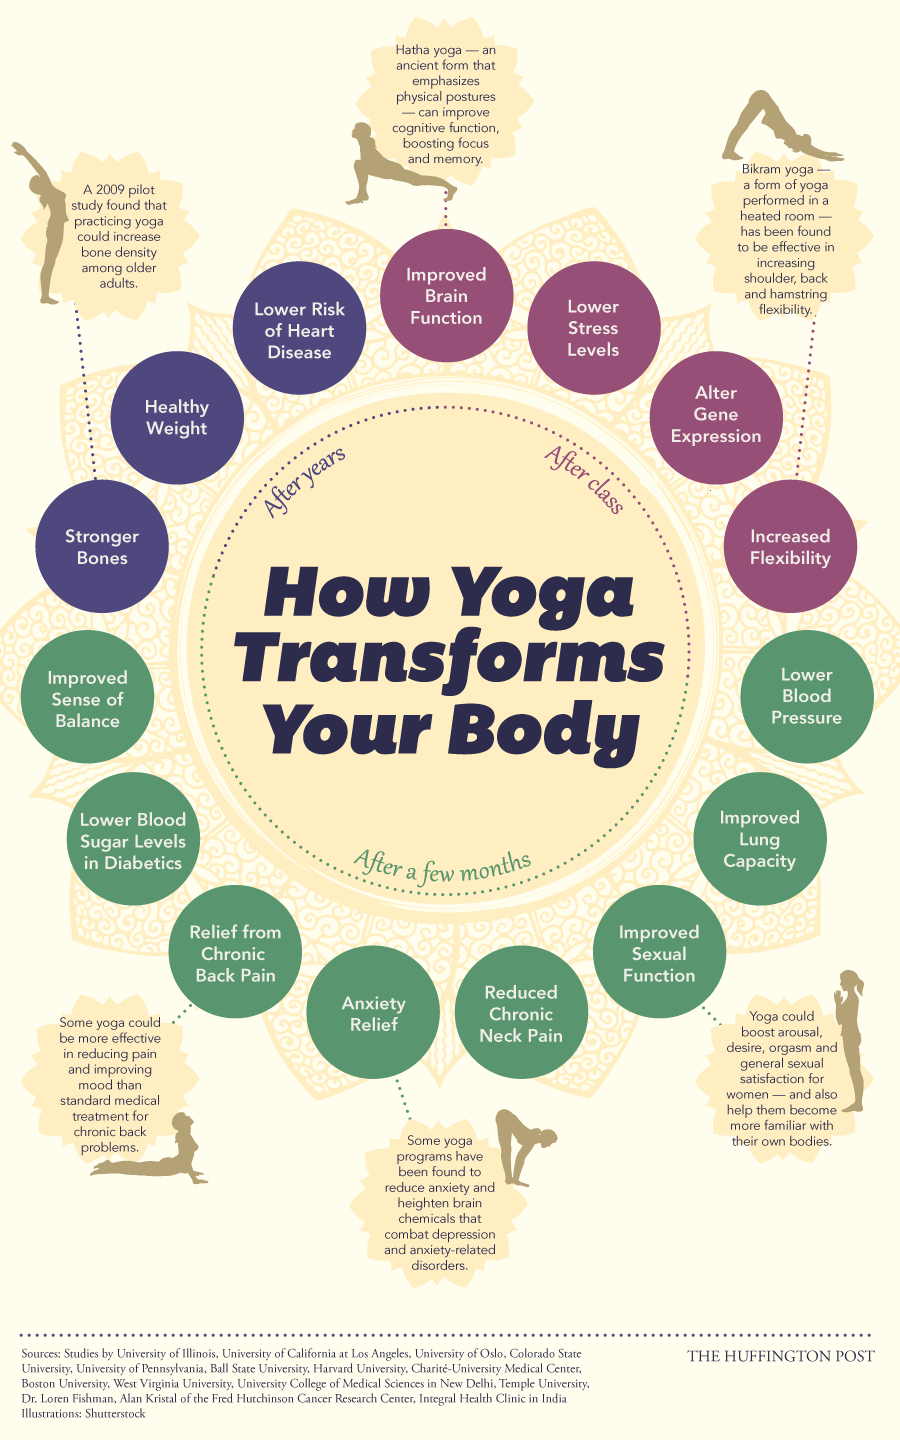 Your body on yoga infographic